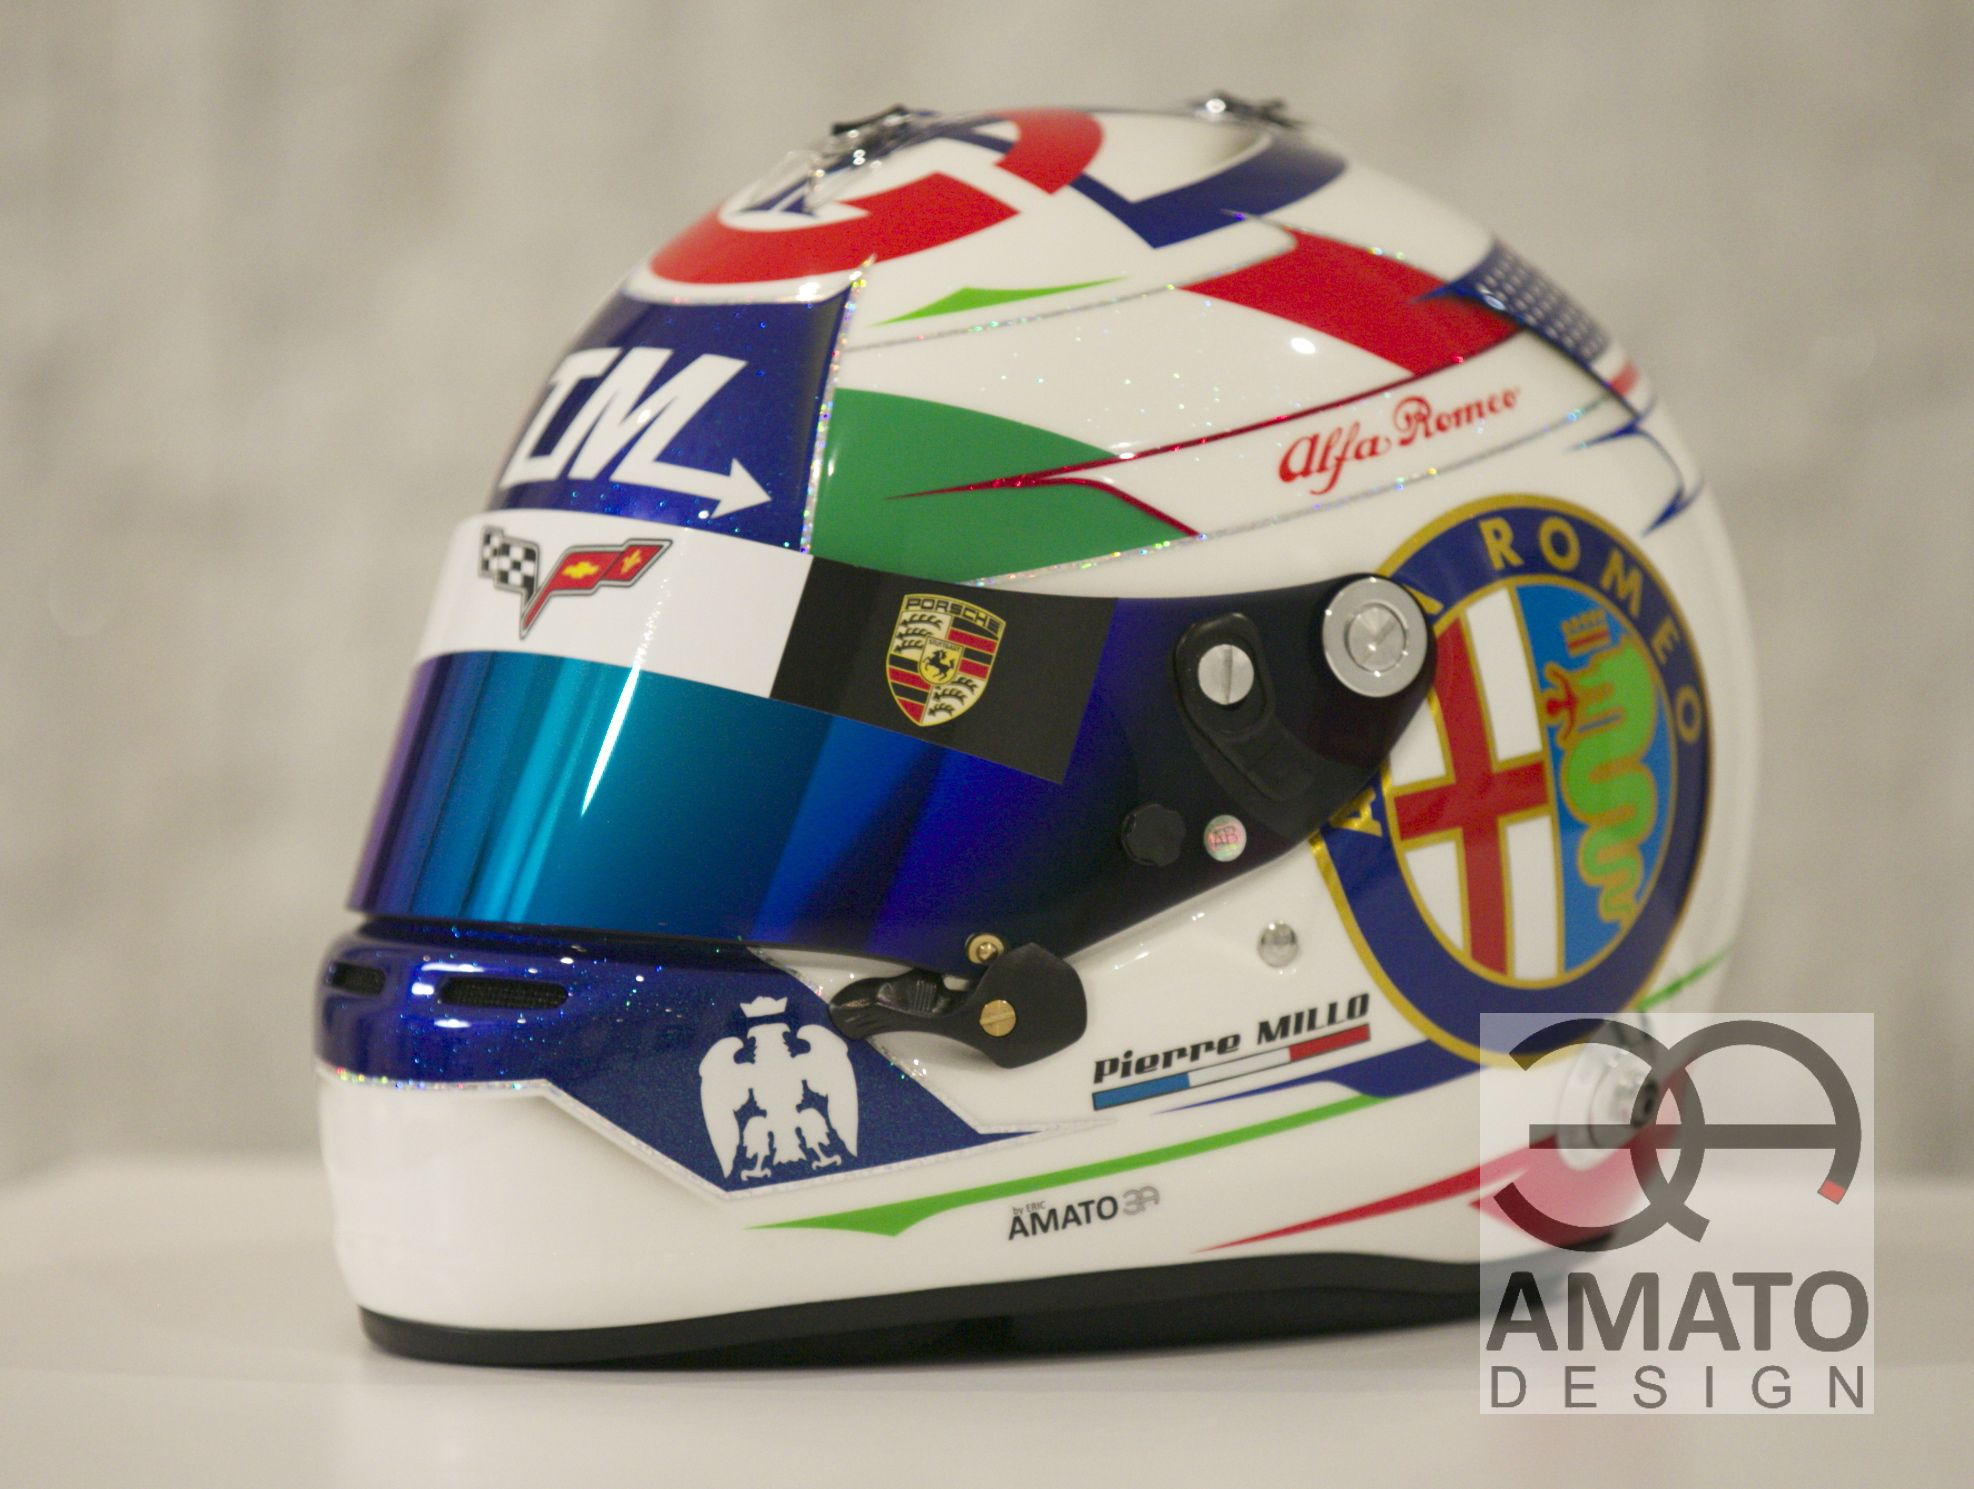 CASQUE AMATO DESIGN PIERRE MILLO